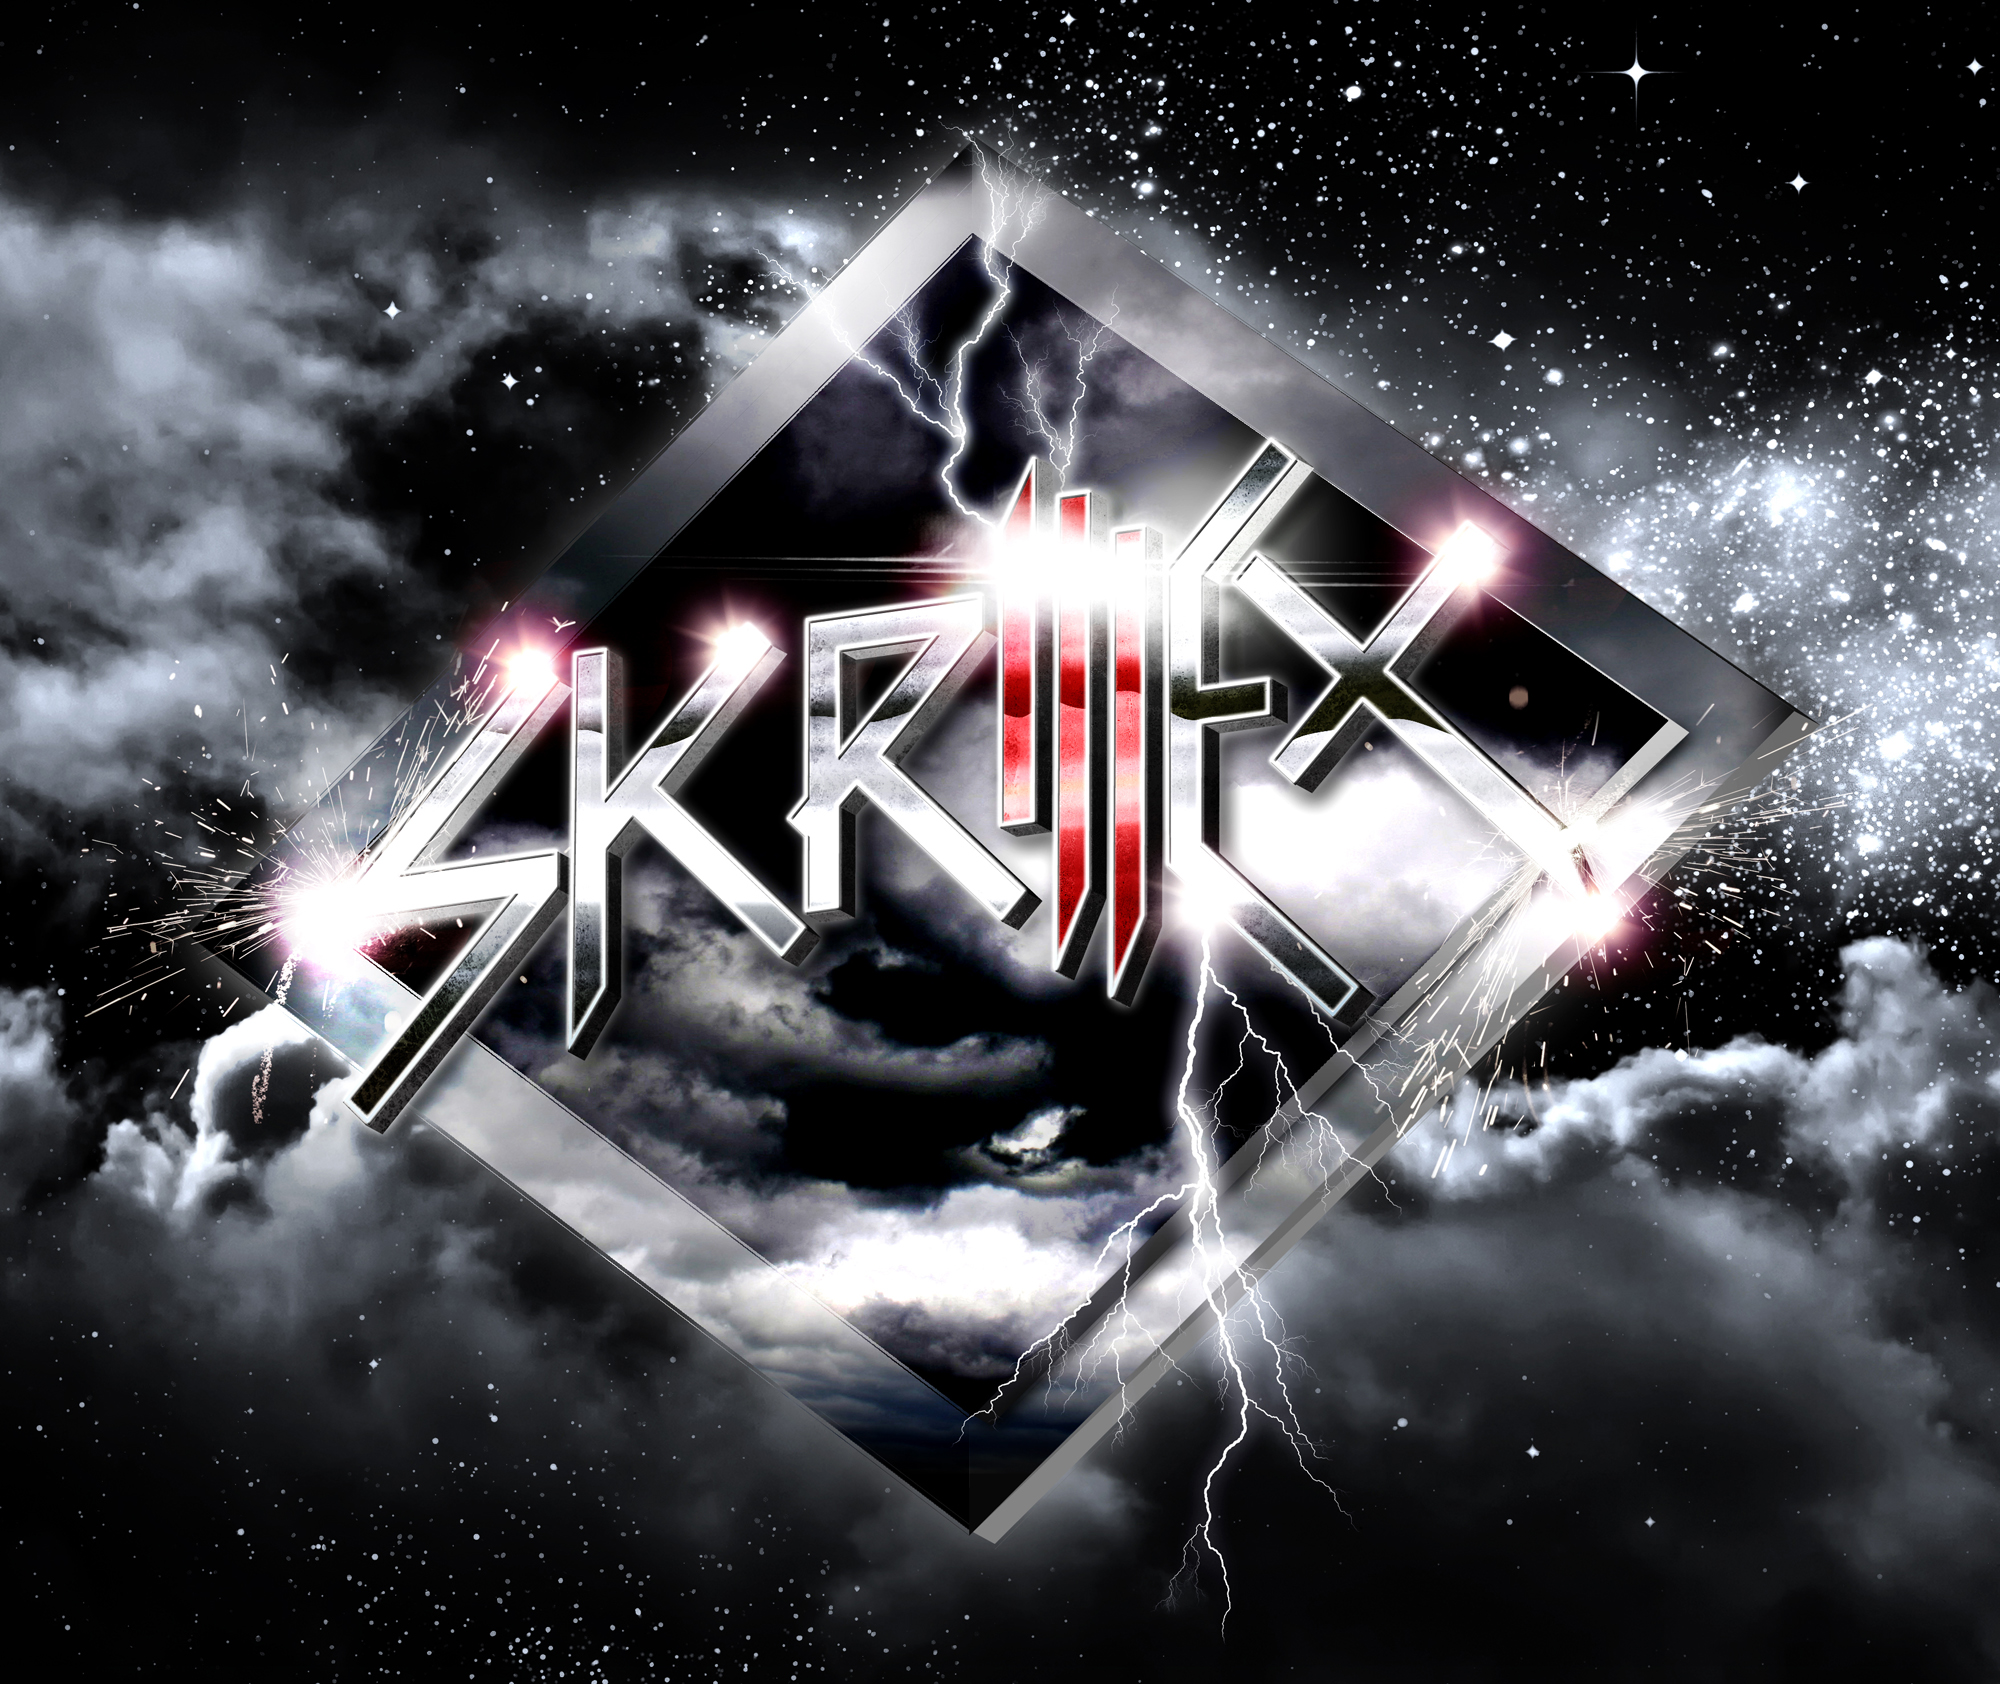 Good+dubstep+artists+like+skrillex